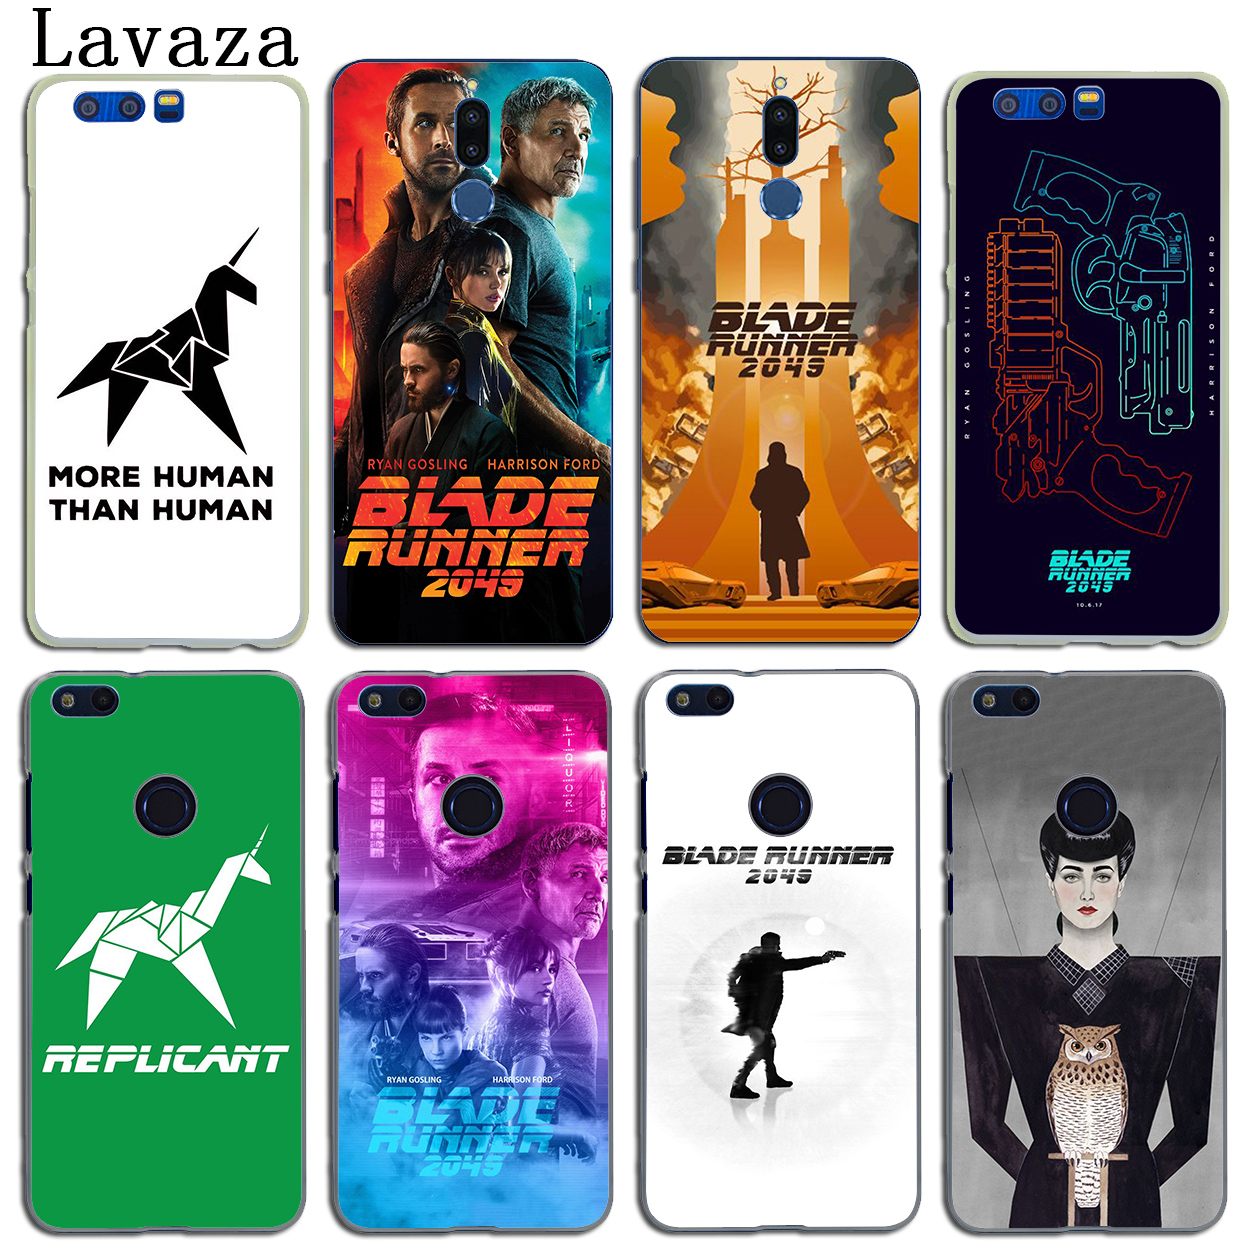 Lavaza Blade Runner 2049 film Case for Huawei Y6 Y5 Y3 II Y7 2017 2018 Nova 2 Plus 2S 2i Honor 10 9 8 Lite 7 6 6A 7X 6X 6C Pro